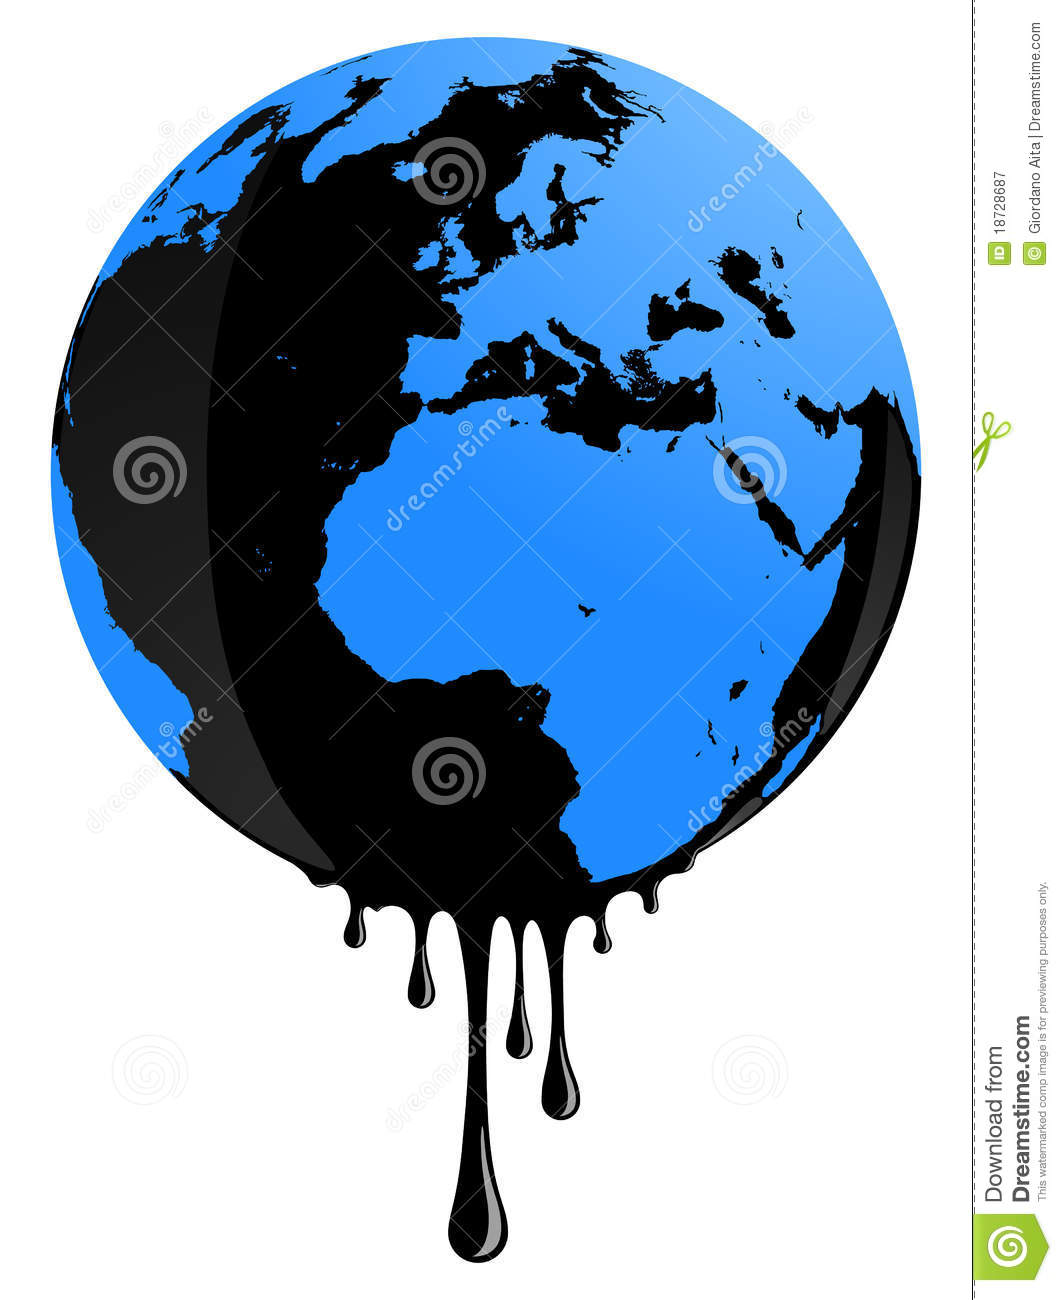 Earth Oil Pollution Royalty Free Stock Photography - Image: 18728687